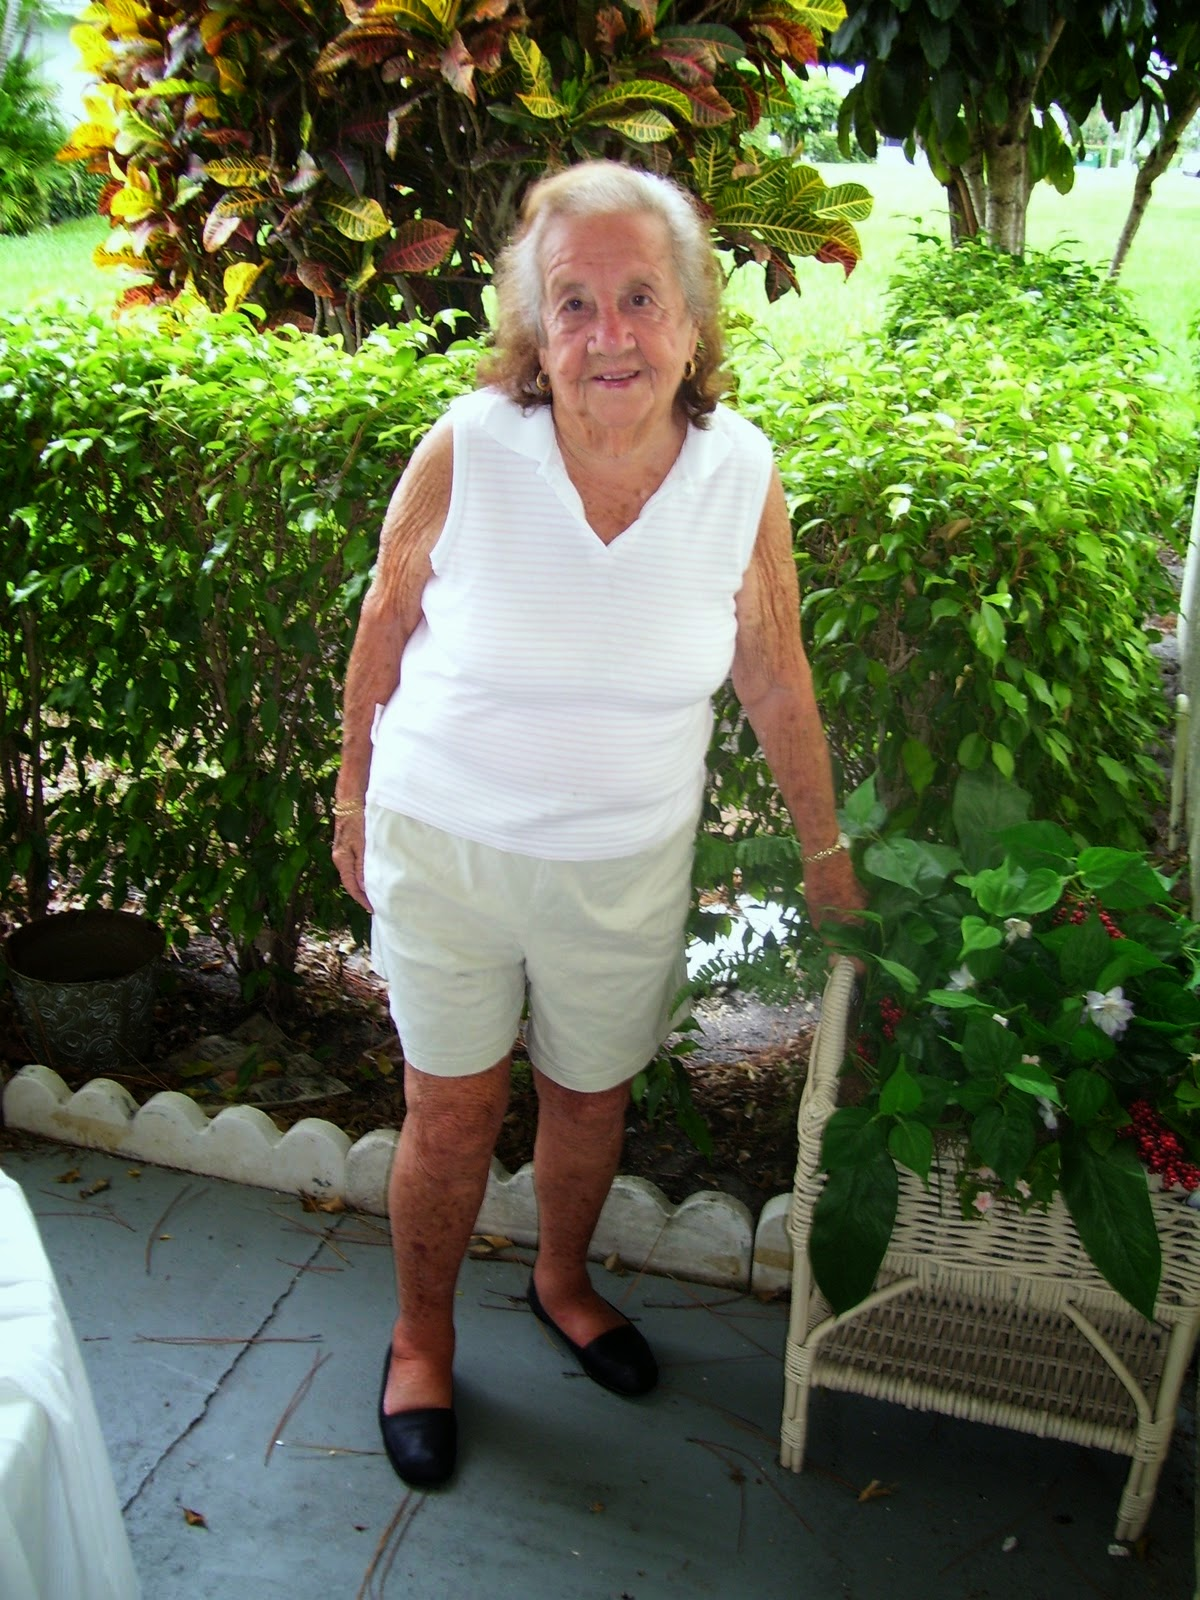 Dotty age 956, lived with Alzheimer's